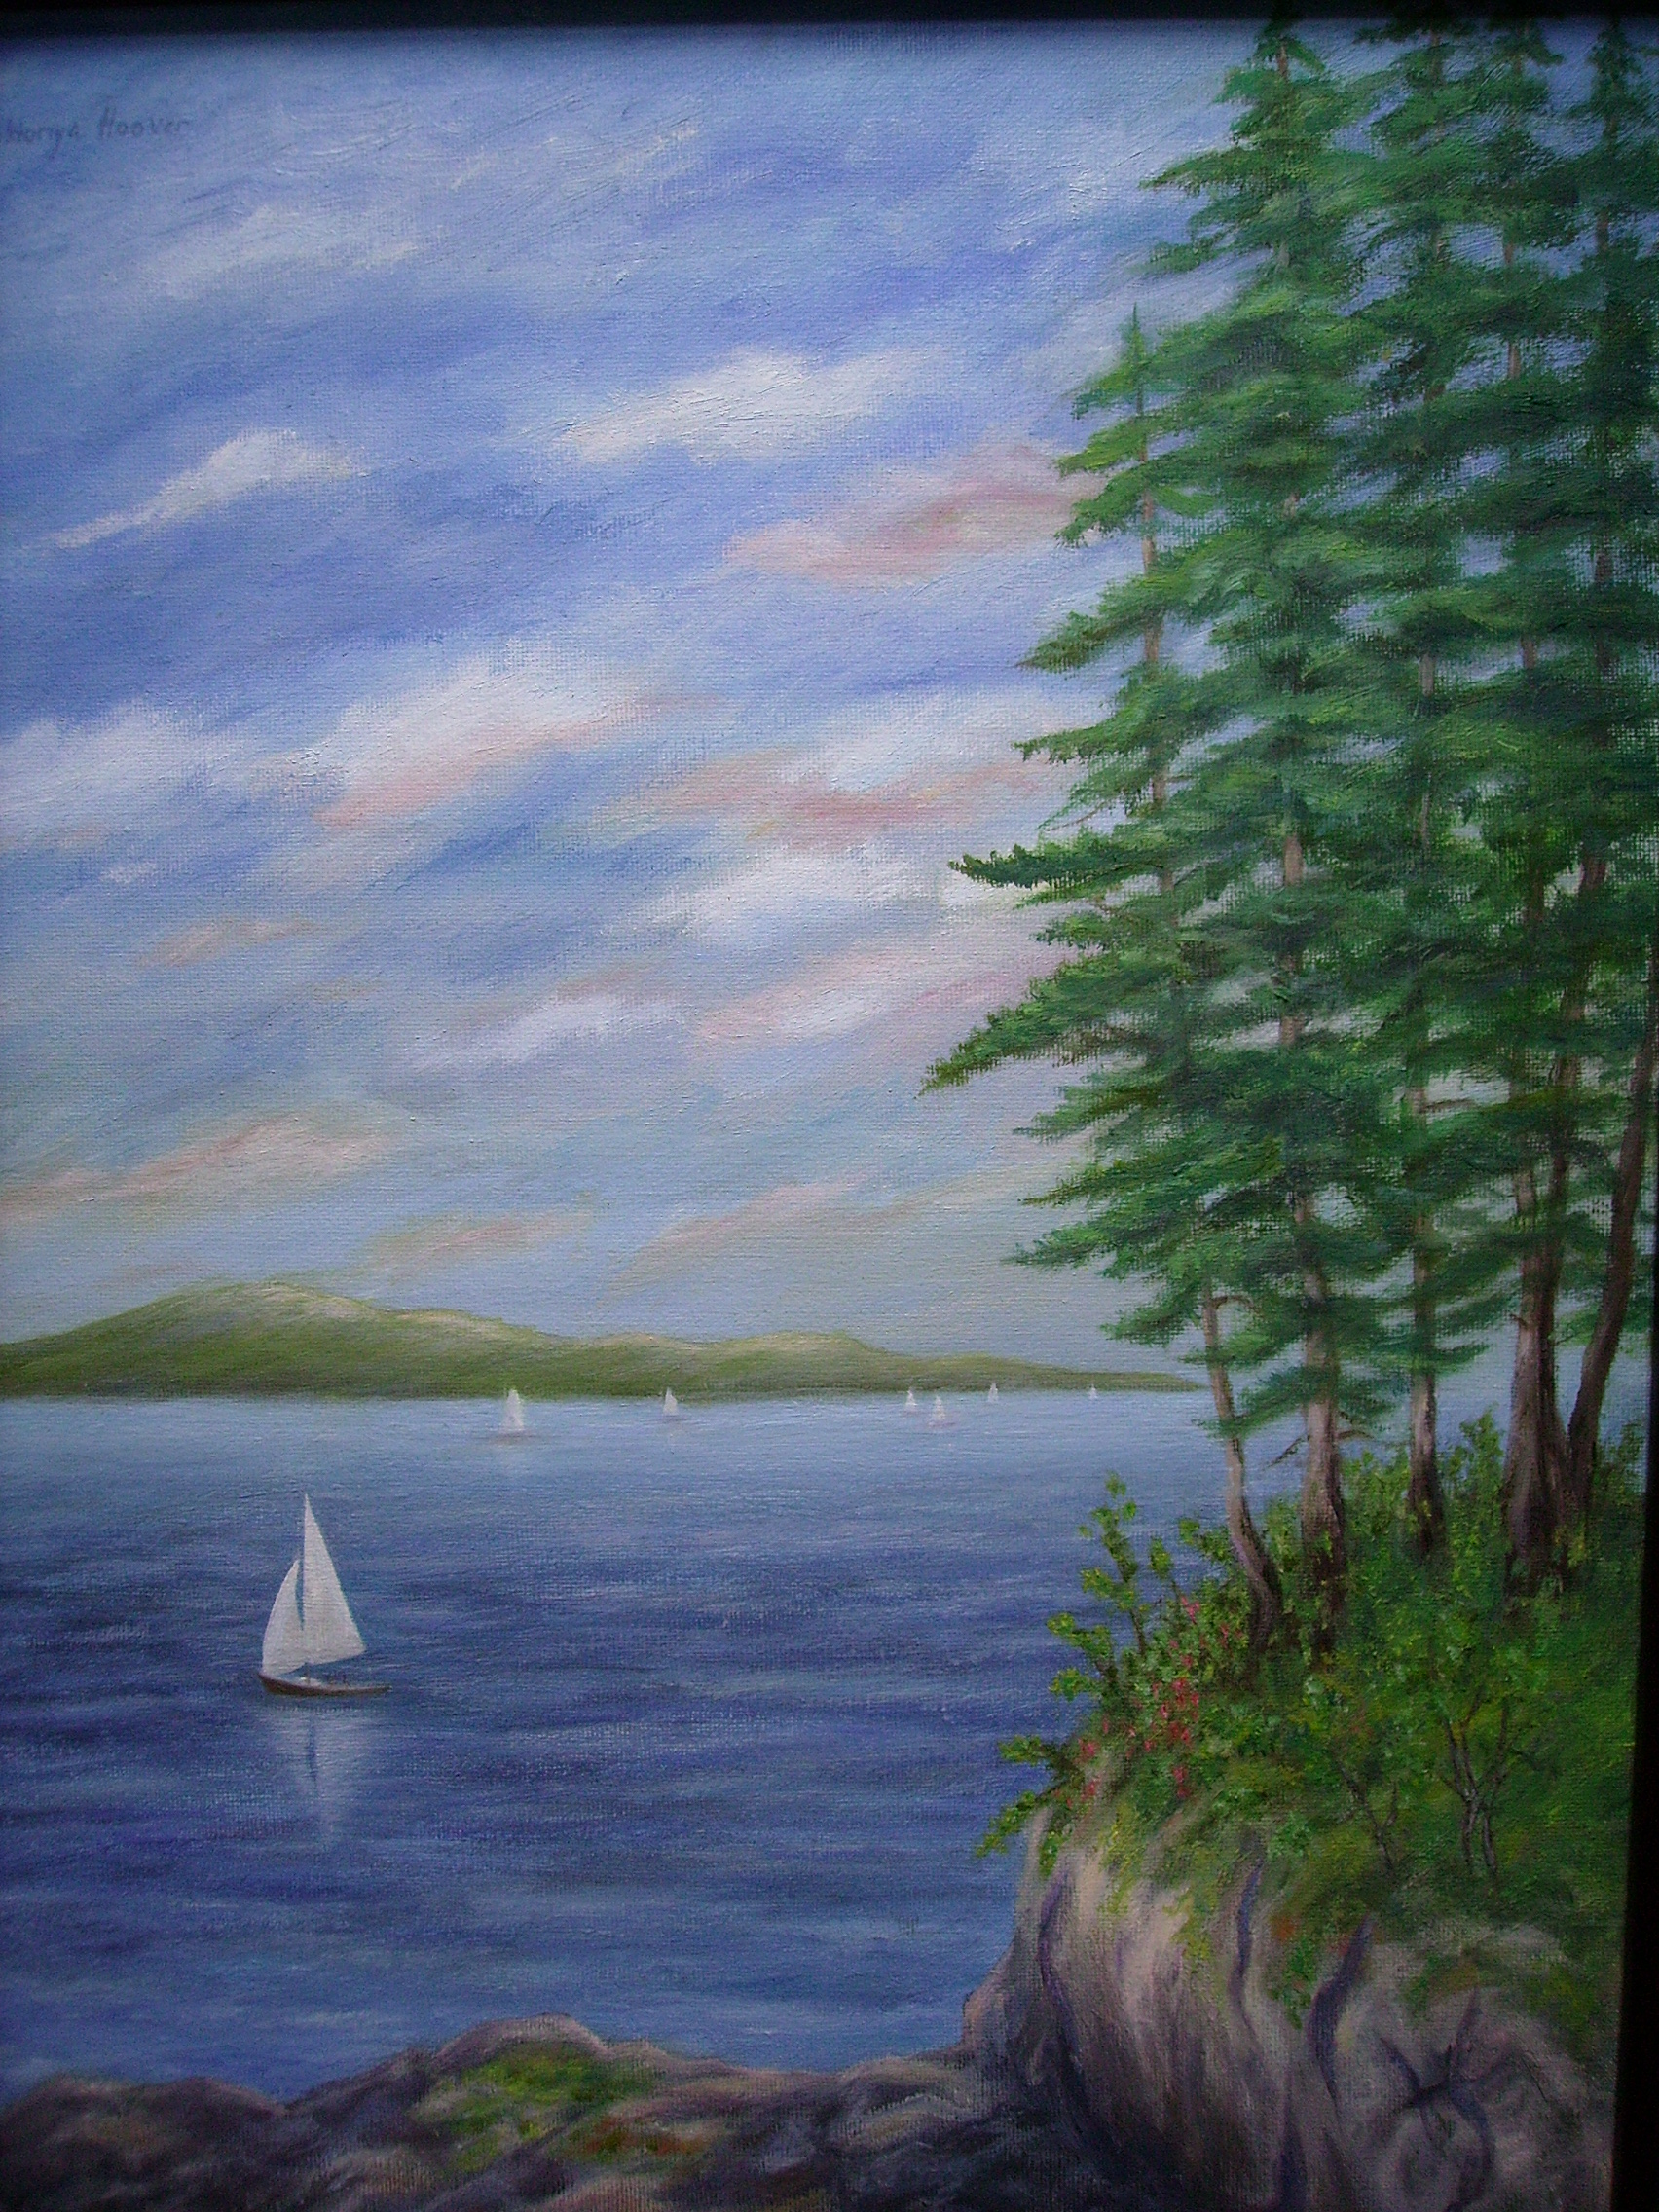 painting of sailboats on the water with pine trees